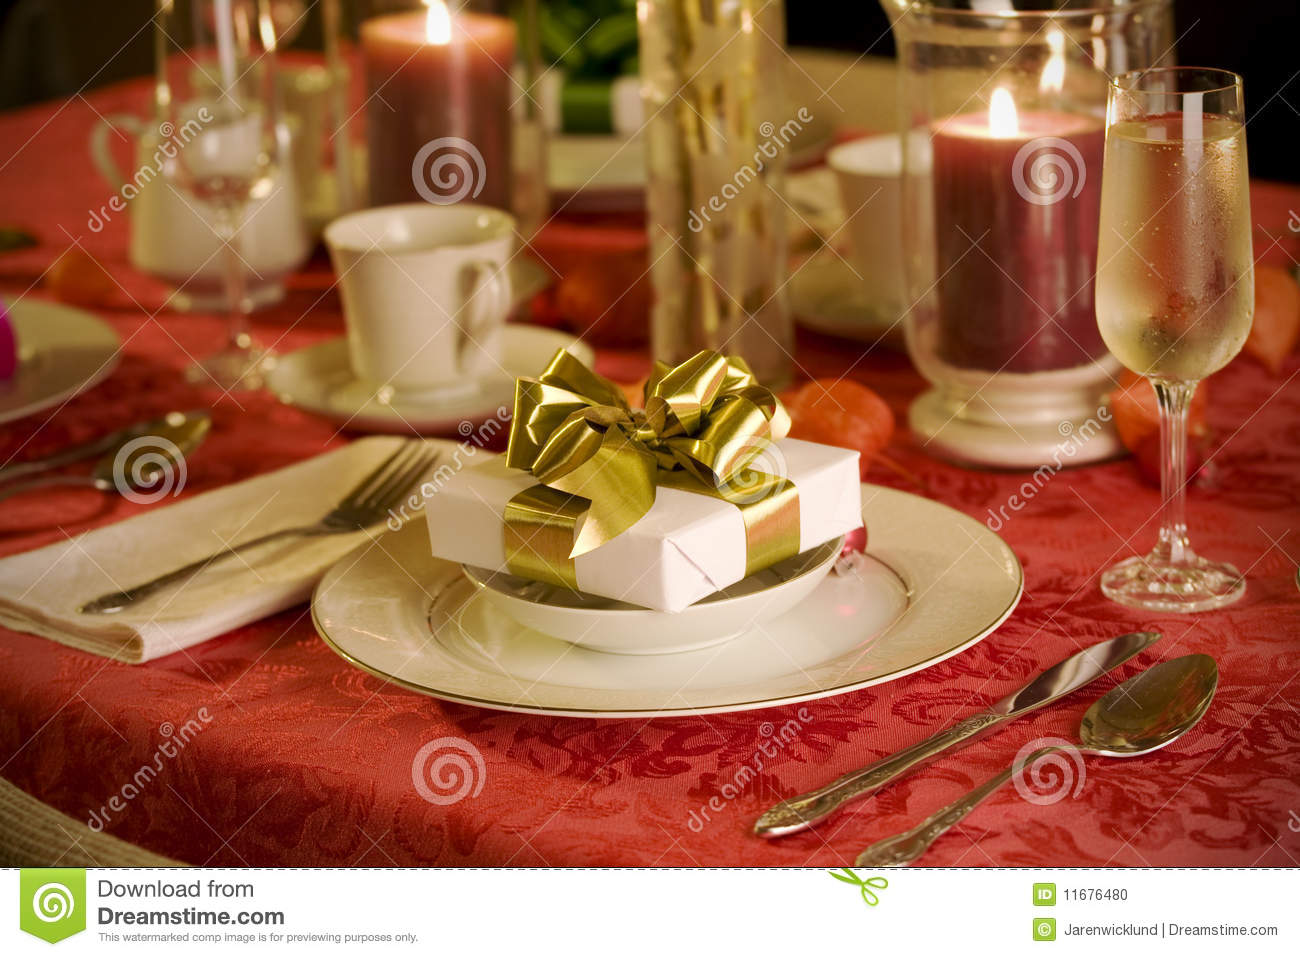 Elegant christmas table setting in red with gold gift as focal point